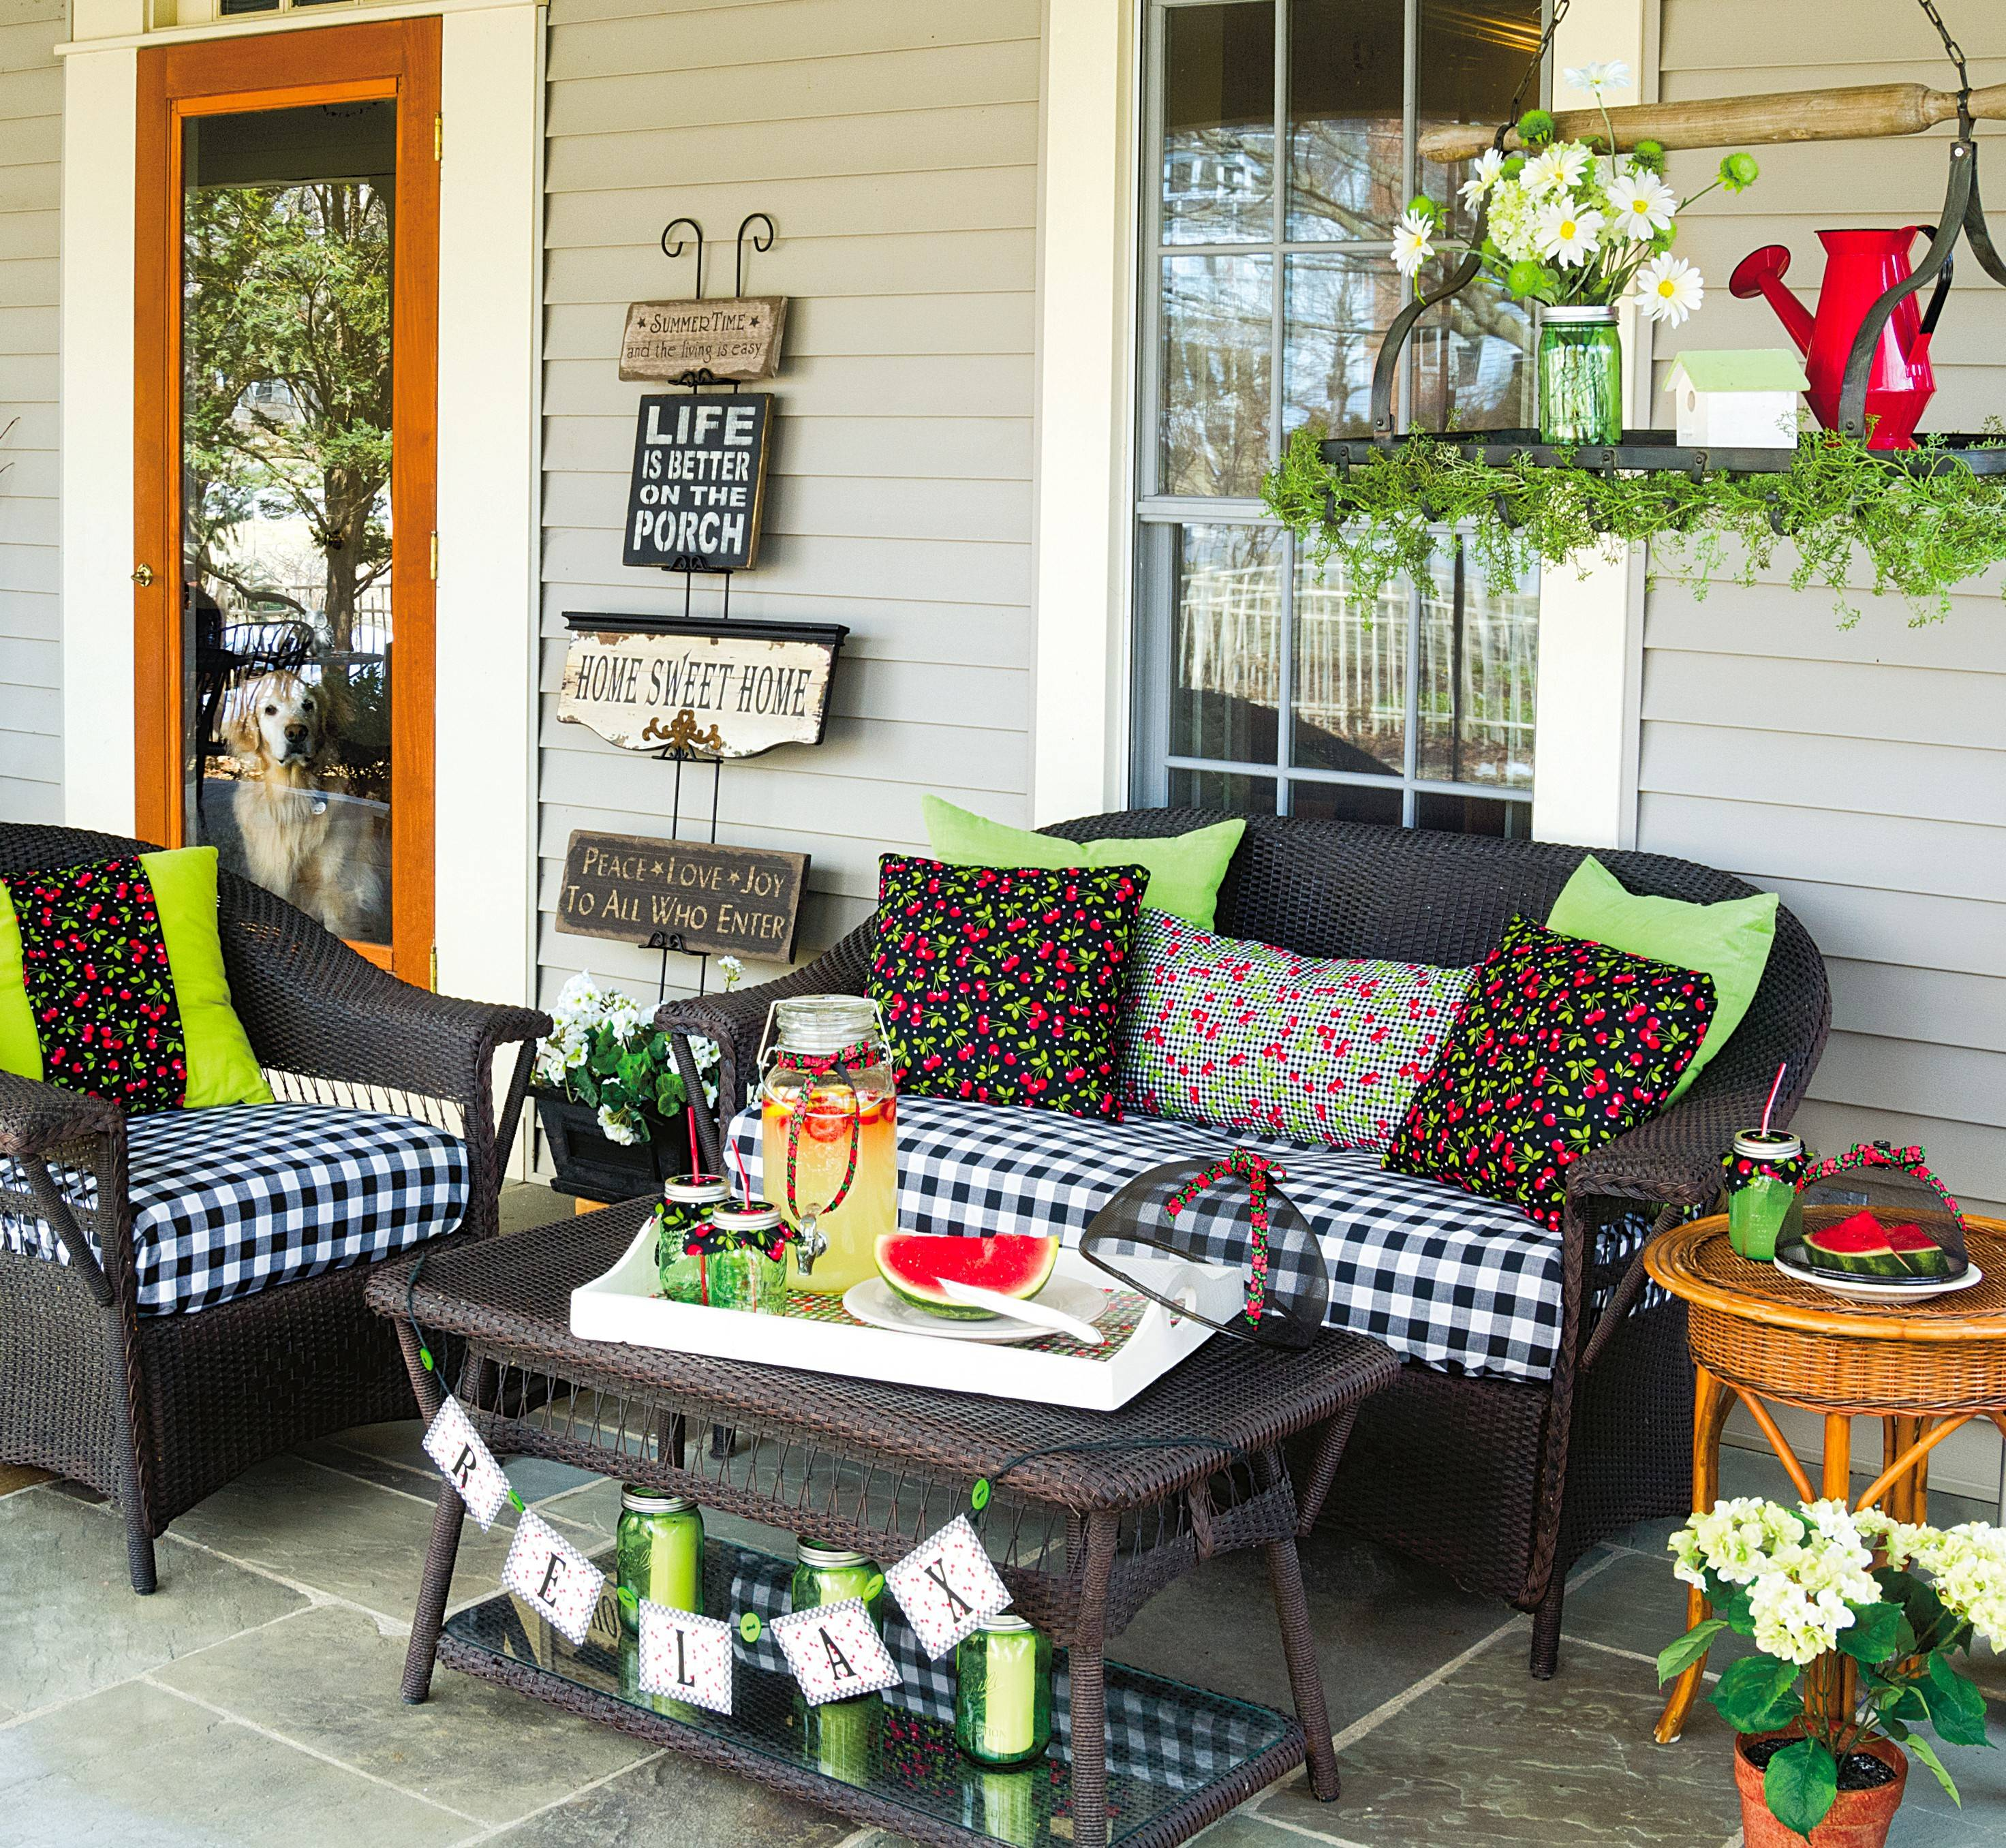 Create a recurring theme throughout your porch seating area by picking a summer icon and working it into your decor. Here, cheery cherry-covered pillows look perfect on the black-and-white checked cushions and infuse the area with their sweet style.